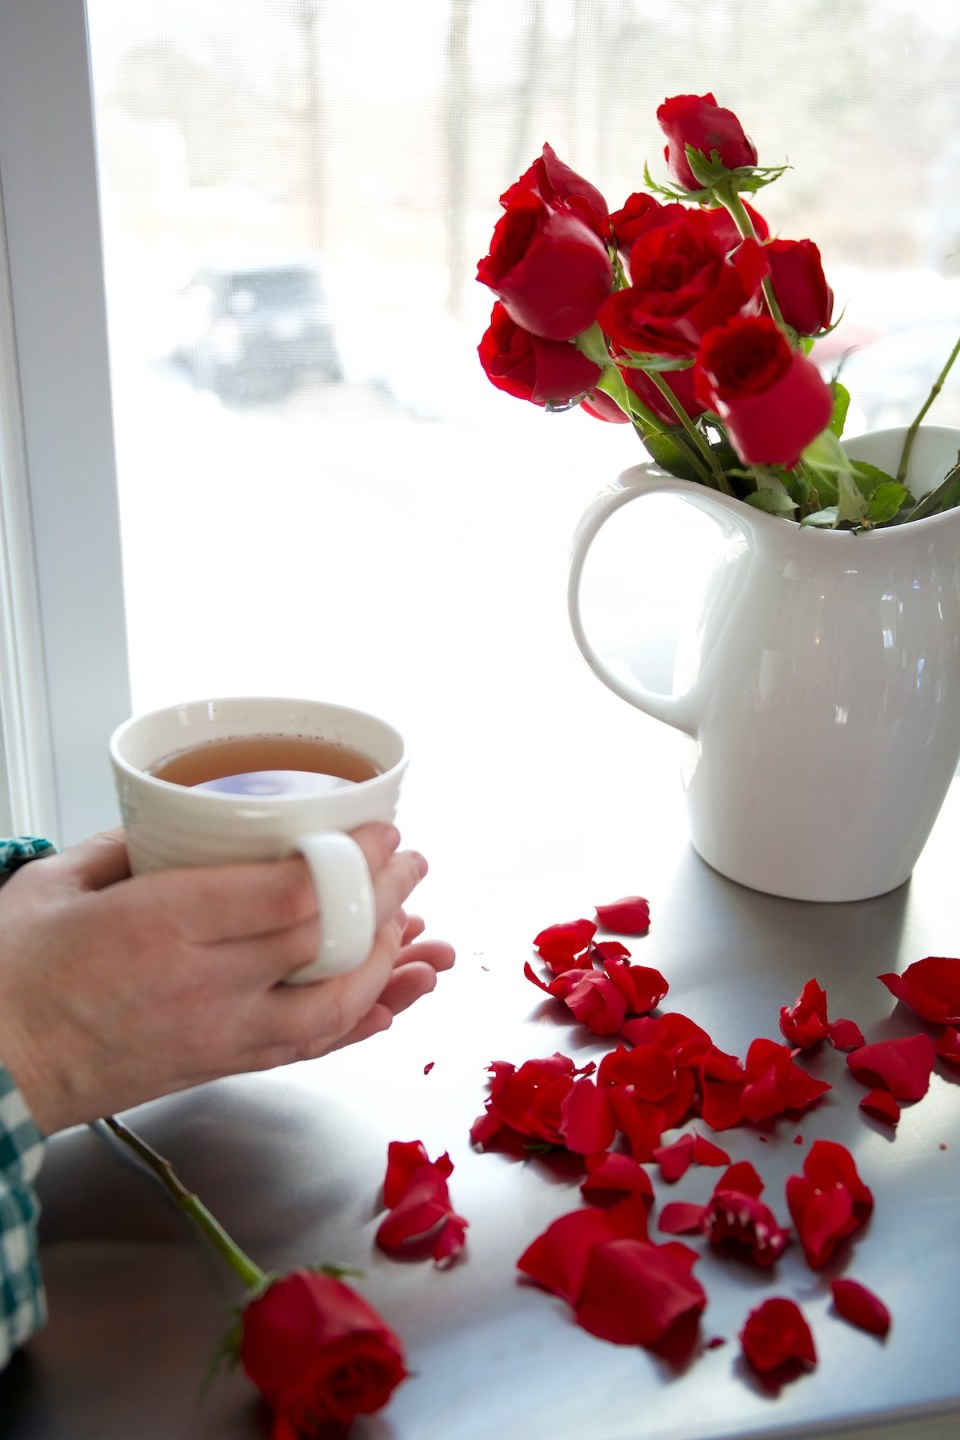 How To Use Rose for Grief Support | Herbal Academy | Rose has many uses during states of grief. Learn how rose can soothe the human spirit during grief as well as some simple recipes for use in this post.